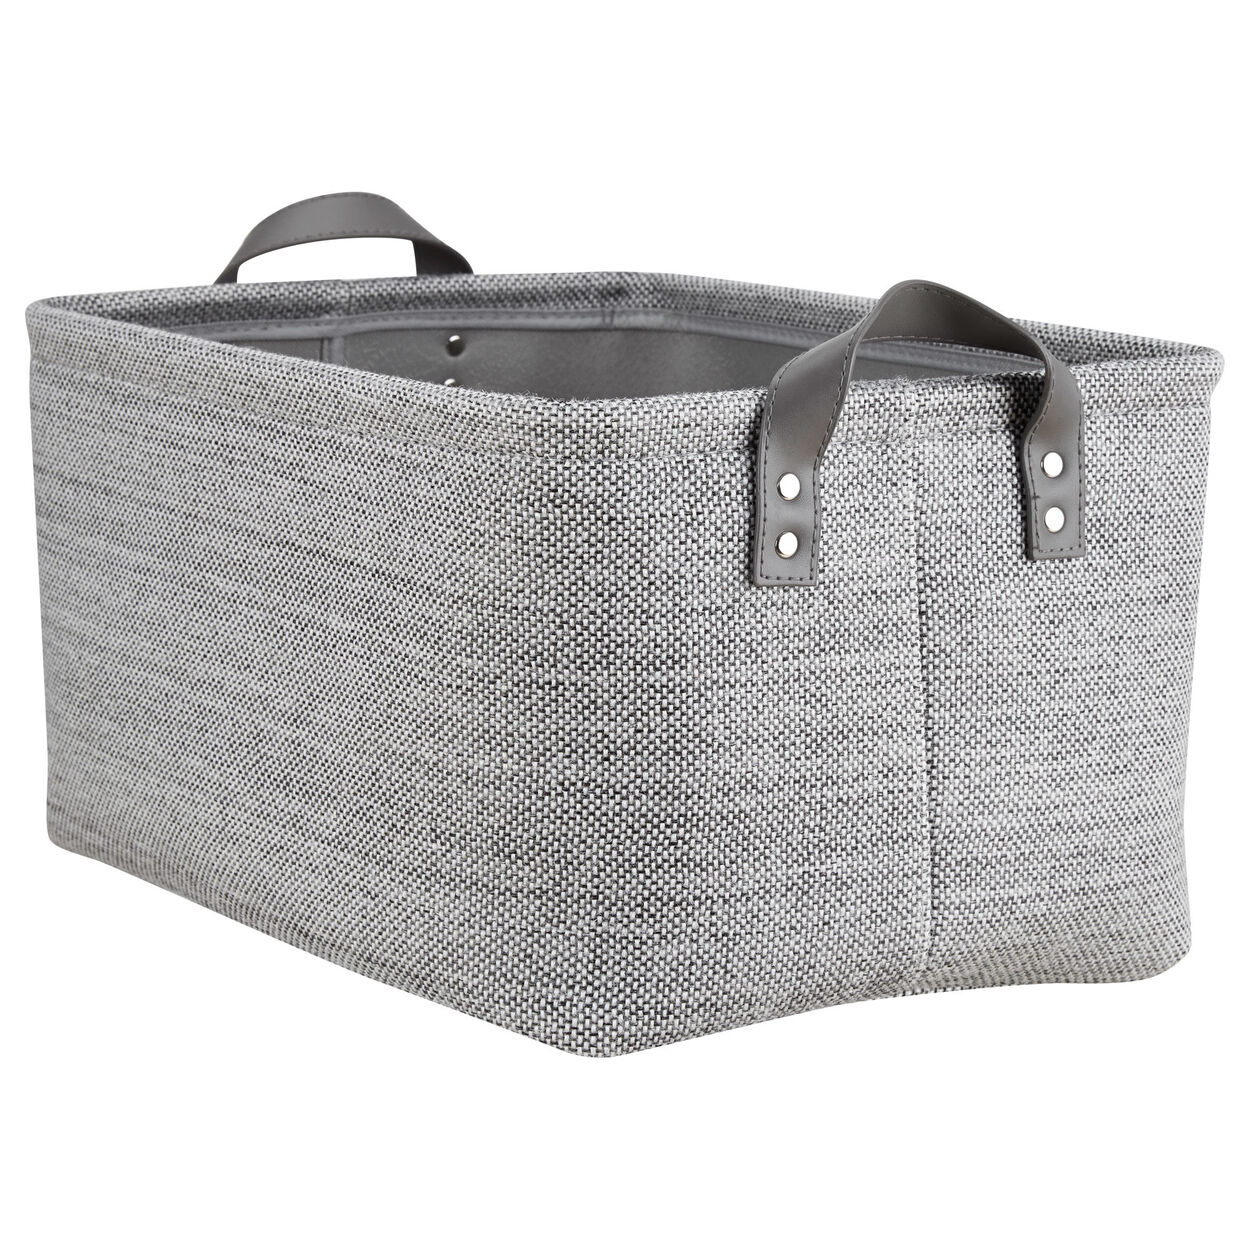 Medium Storage Basket with Handles